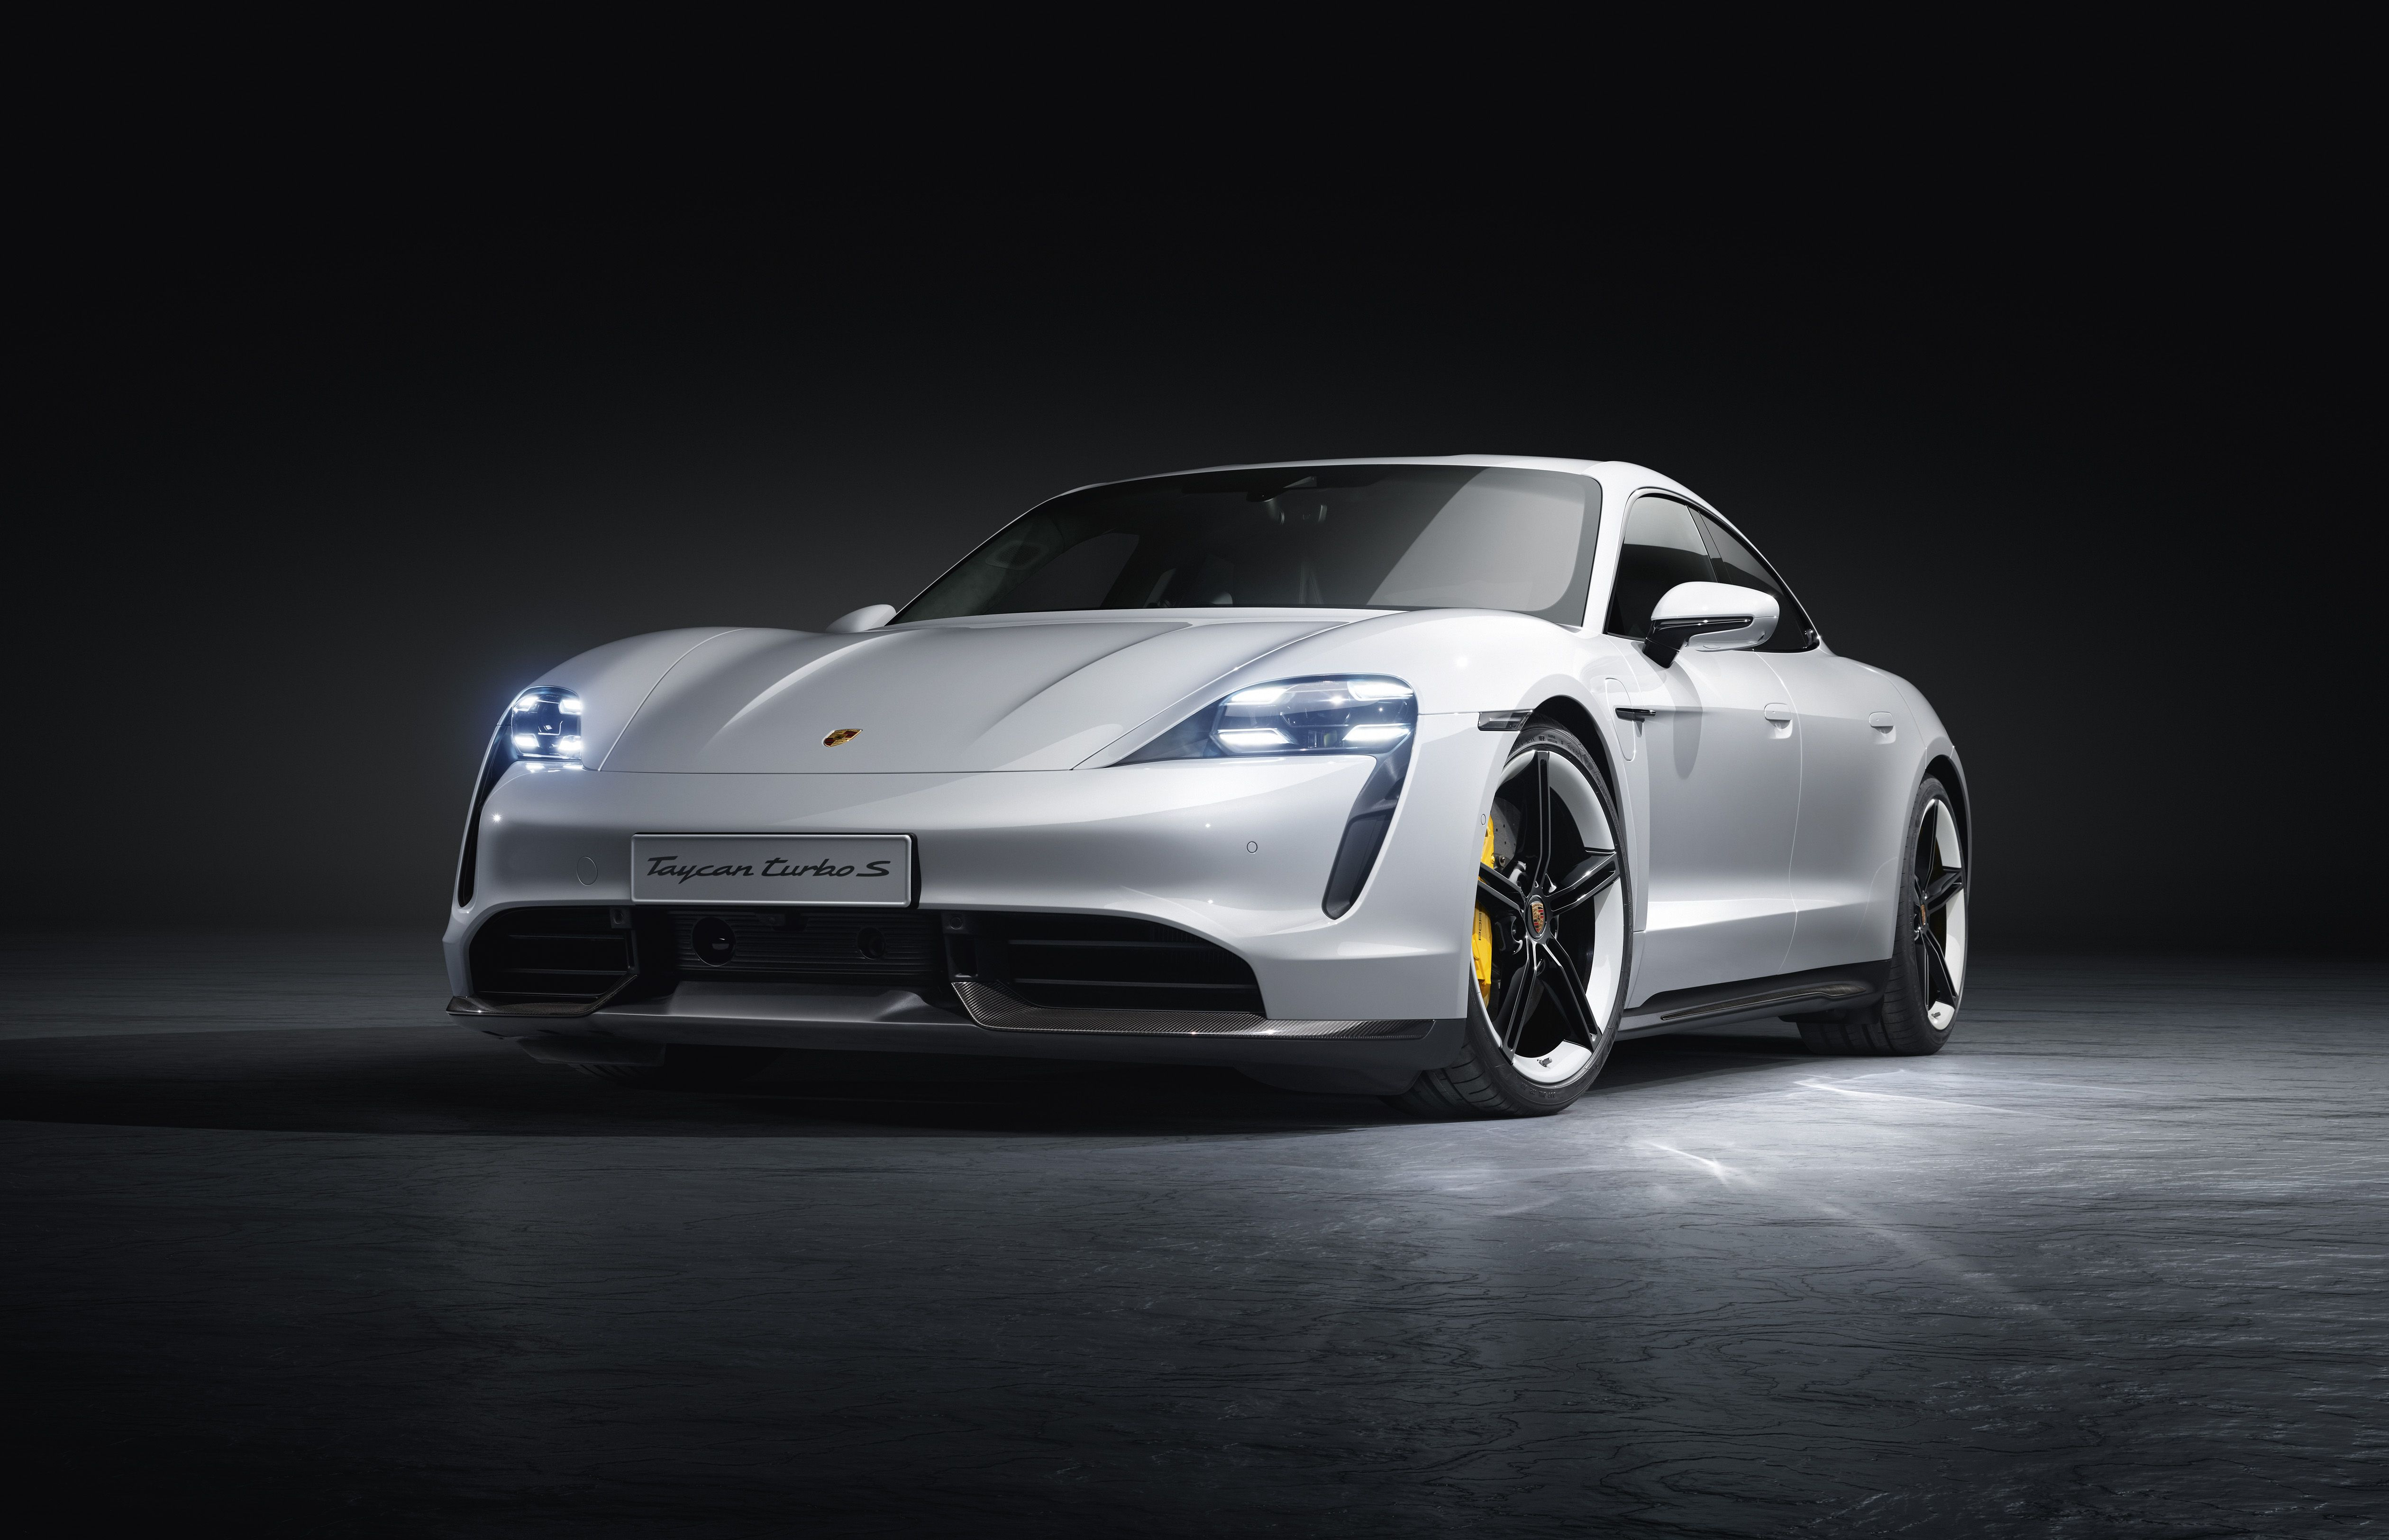 Why Porsche Gave the Taycan Enormous Brakes